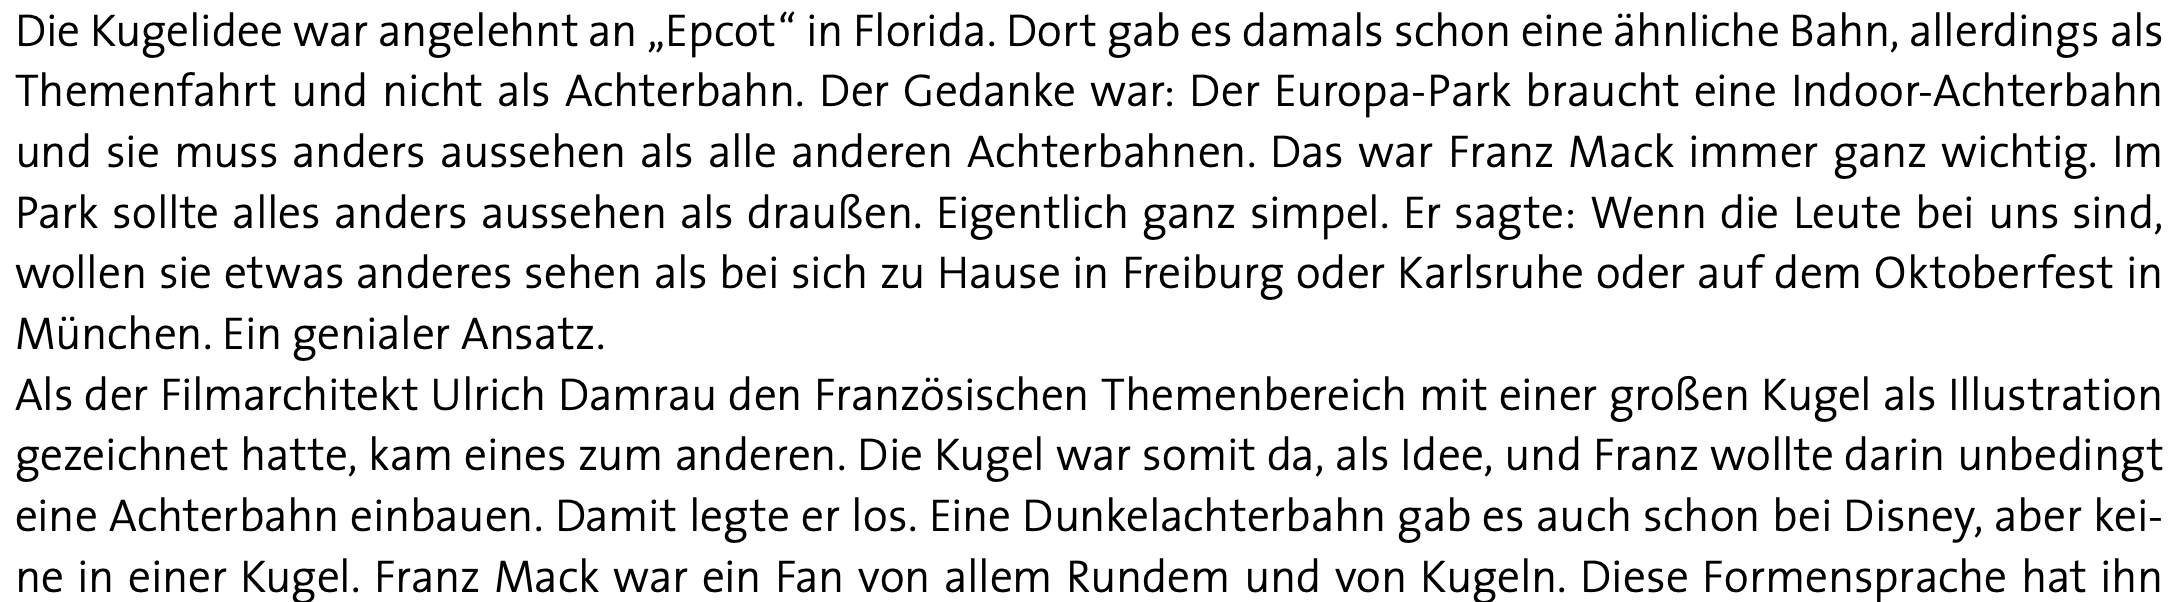 Europa-Park [Allemagne] (1975) - Page 5 210221105336354327